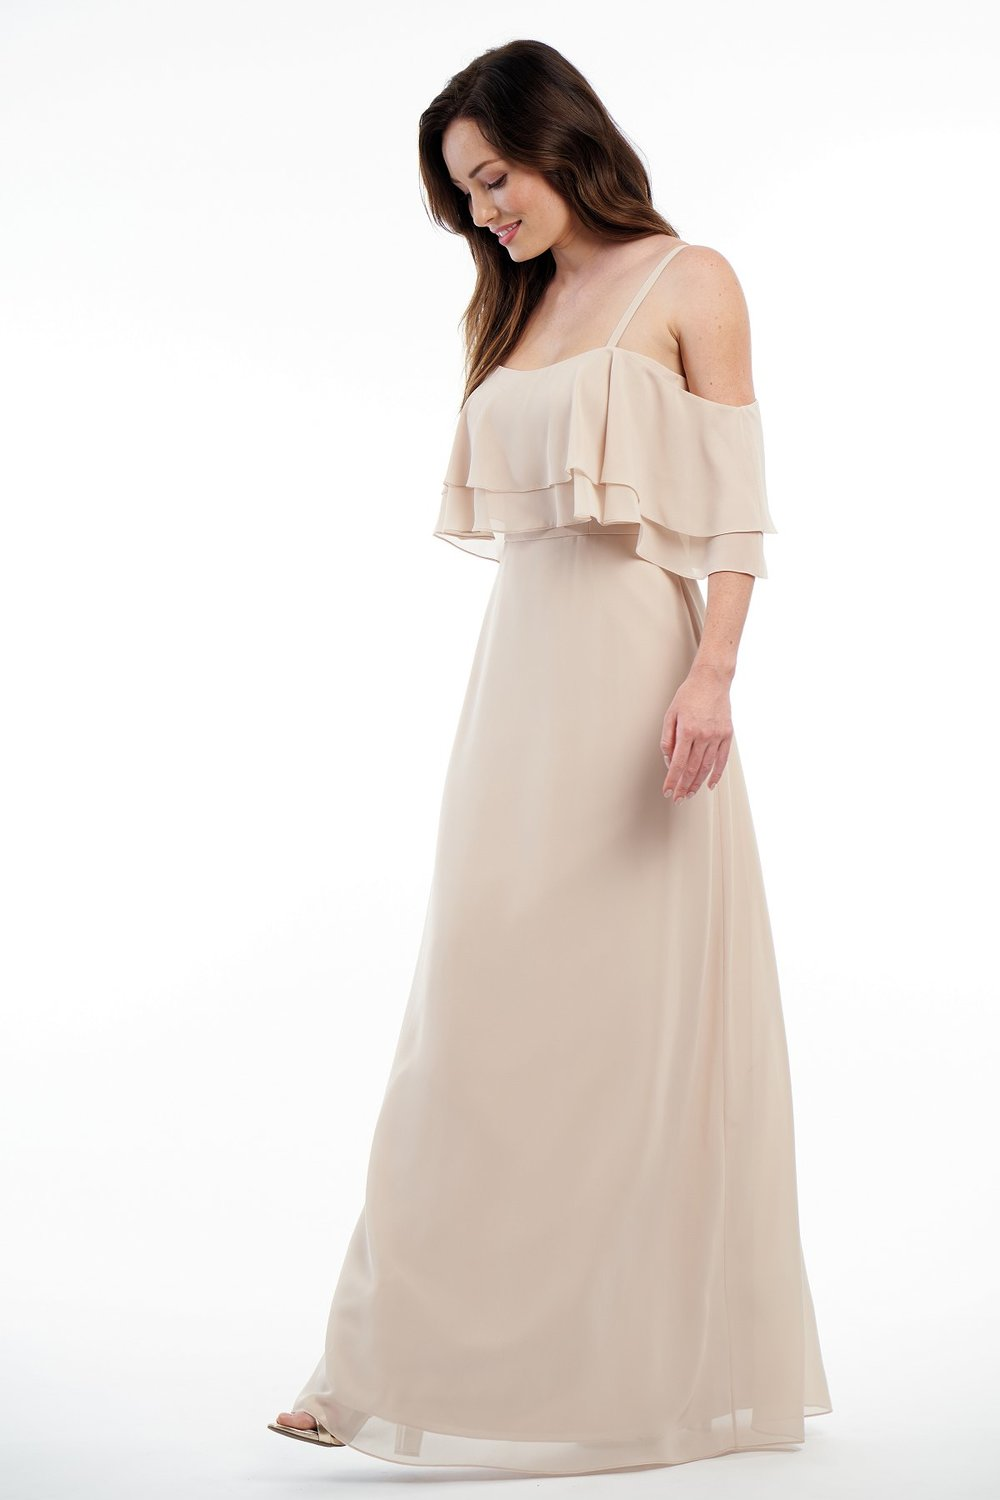 P216001 -  Beautiful charlotte chiffon floor length bridesmaid dress with a straight neckline and spaghetti straps. A layered flowy bodice with fabric that goes around the arms and flow skirt to complete the look    Available in 41 colors